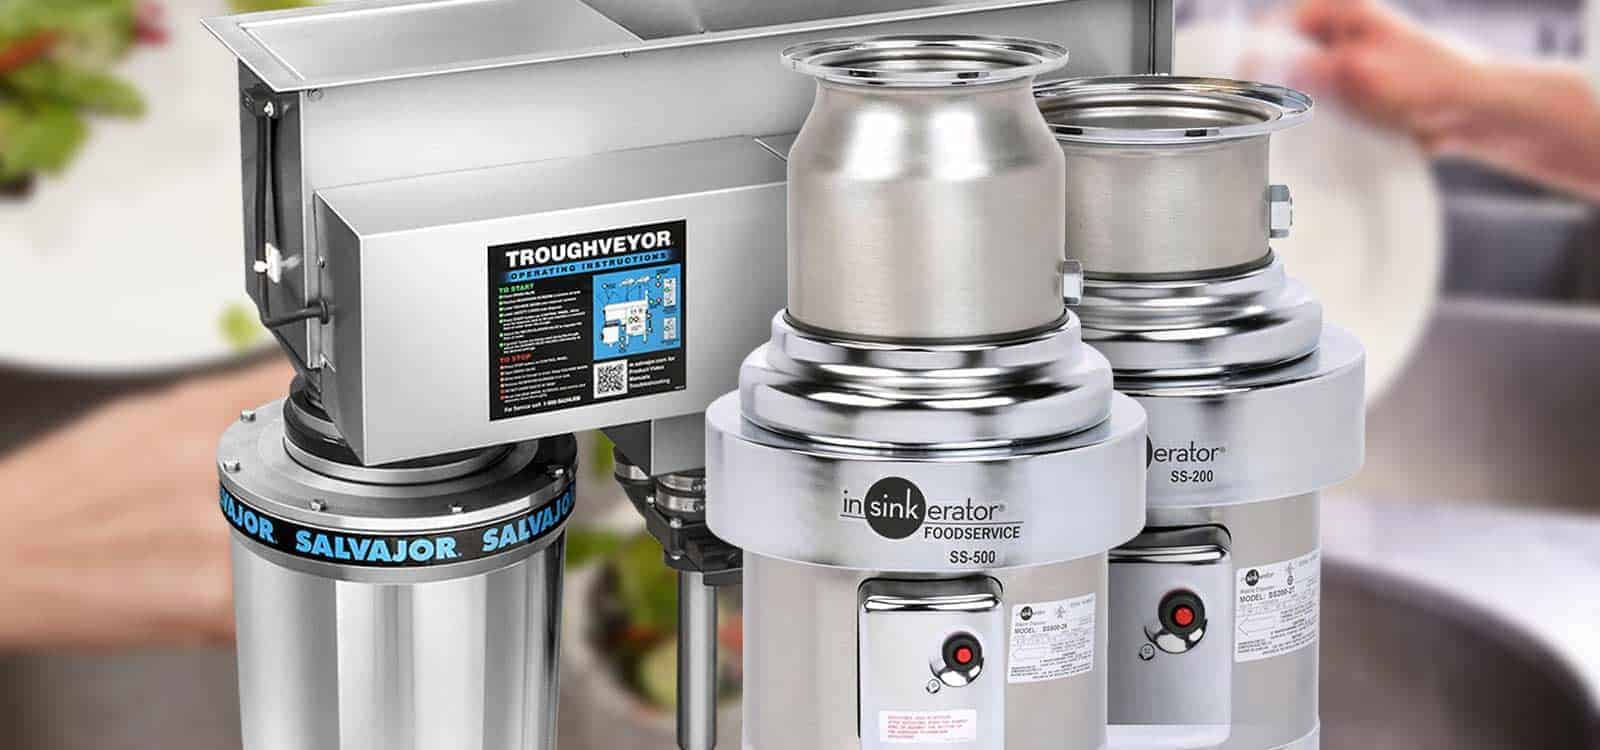 commercial-food-waste-disposers-header